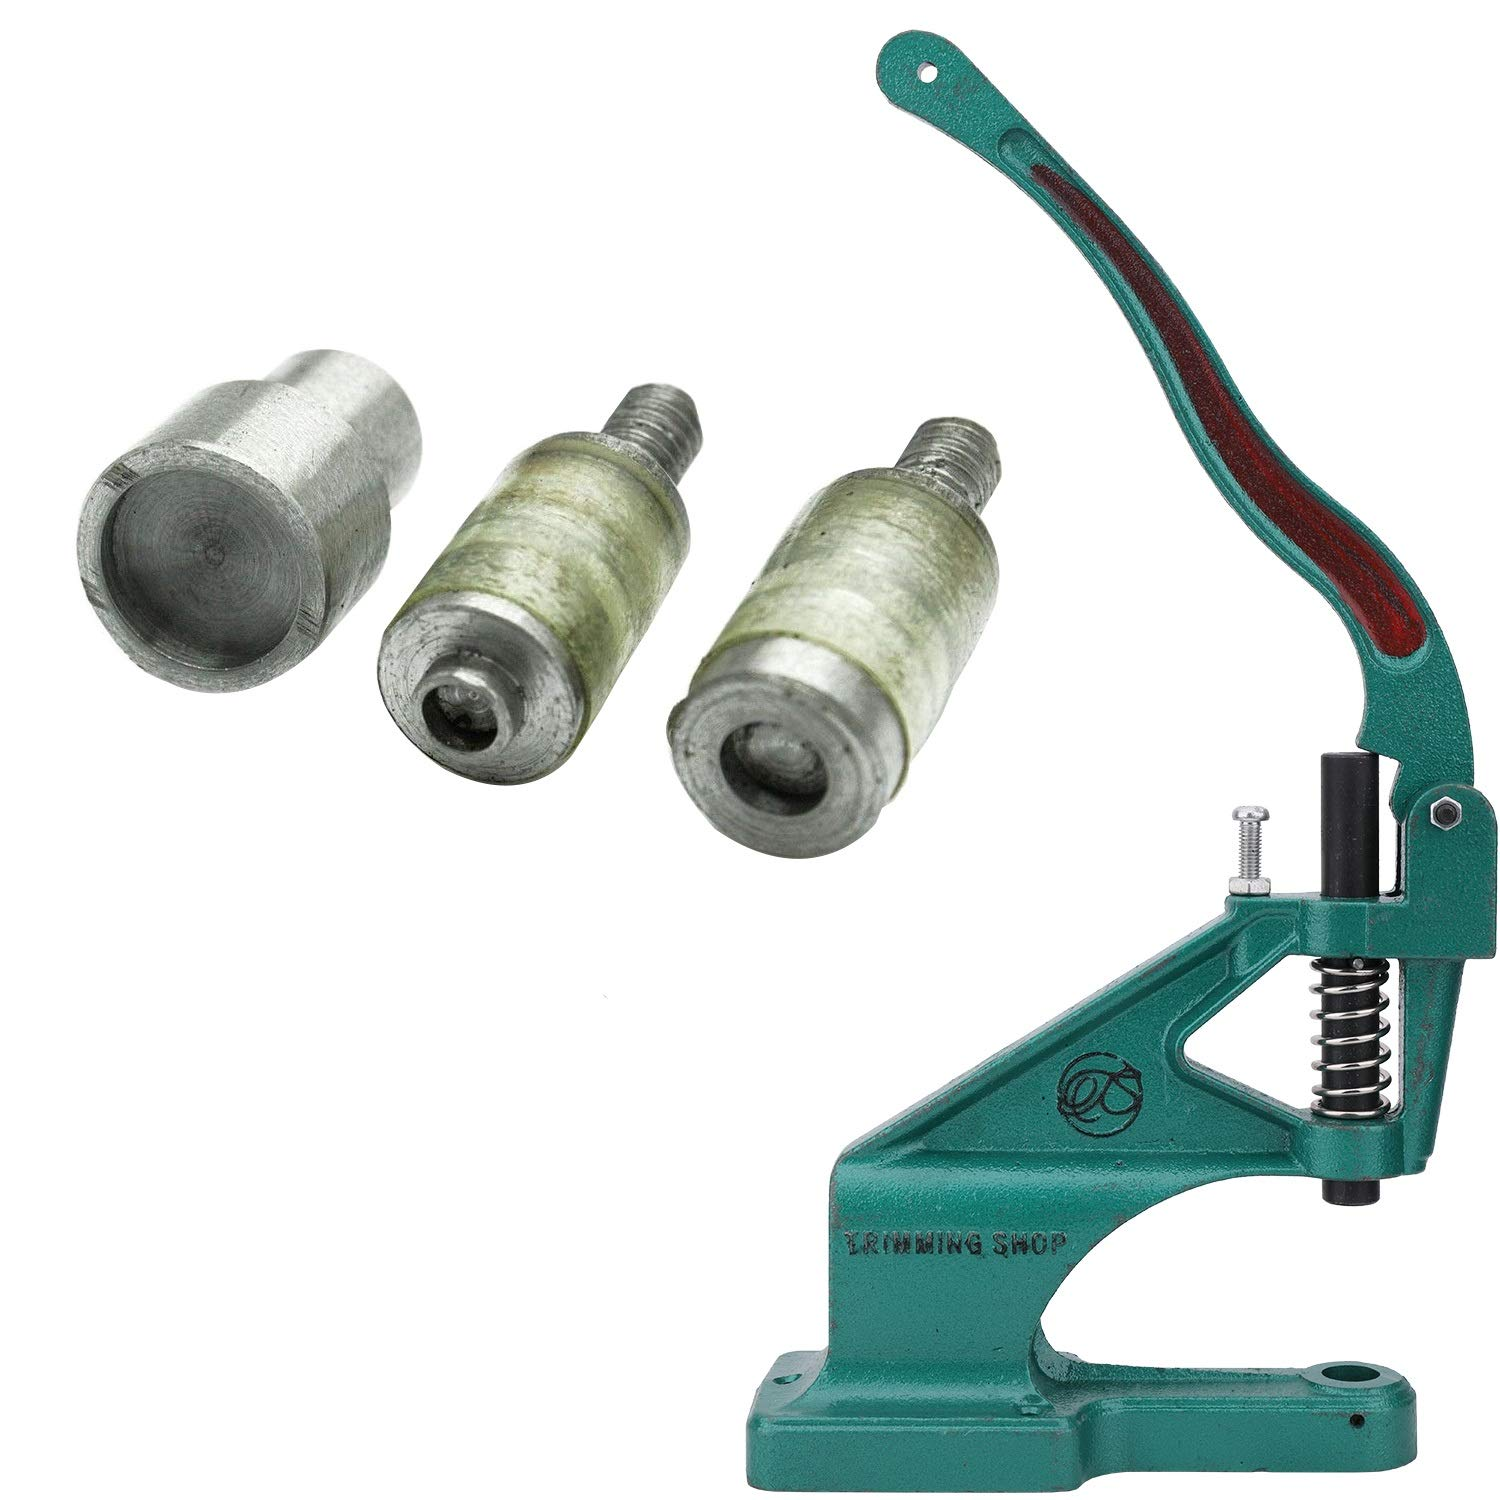 Trimming Shop Universal Green Hand Rivet Press Machine /& Die Set for KAM Snaps in T3 Size 16-10.7mm